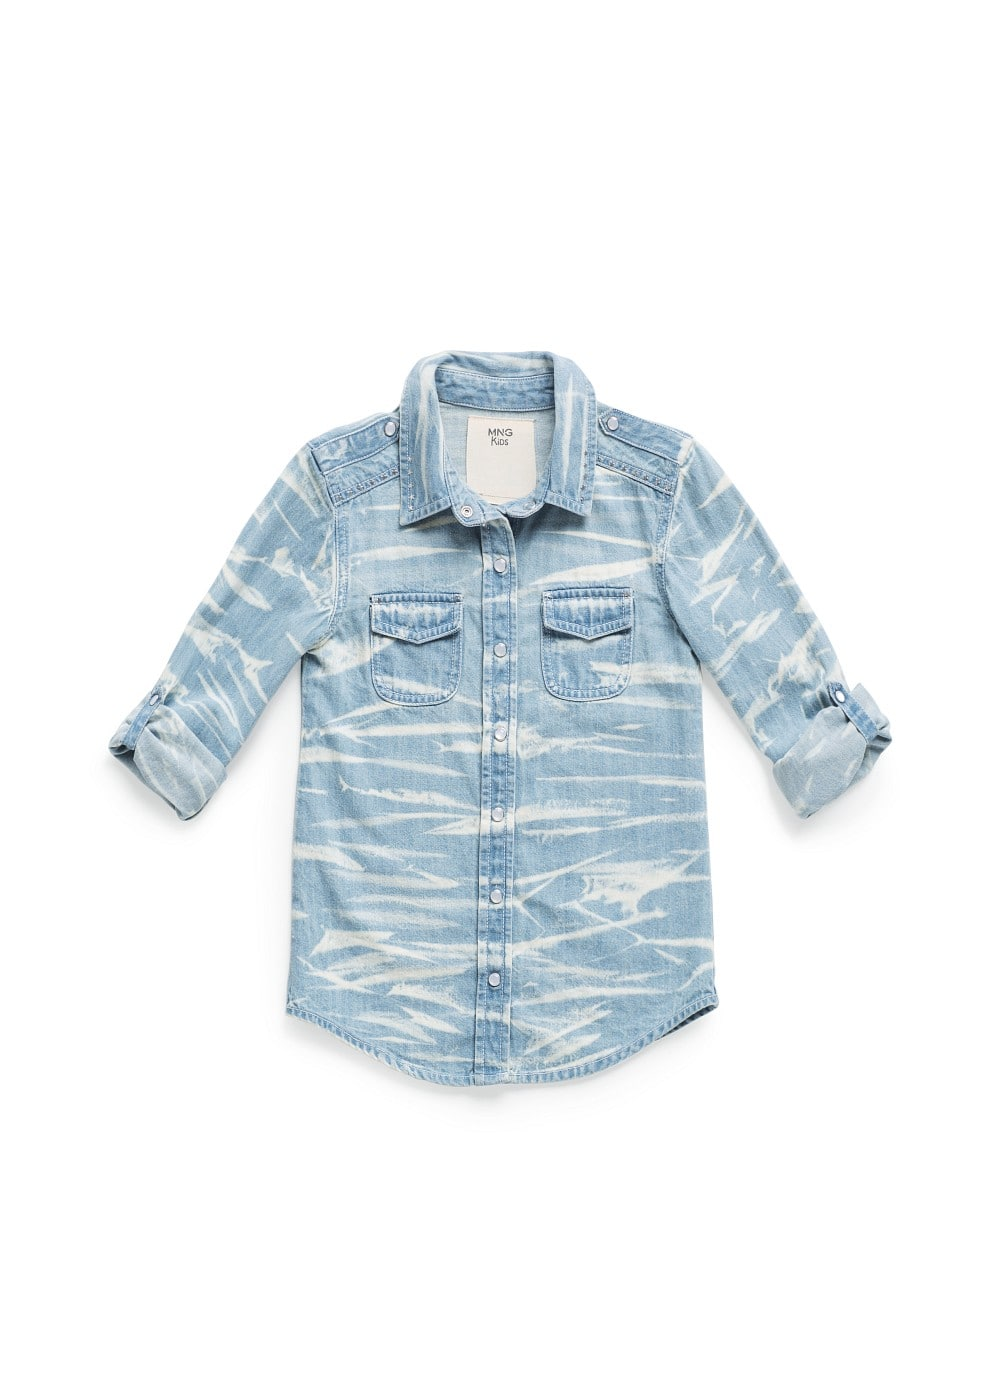 Tie-dye effect denim shirt | MANGO KIDS